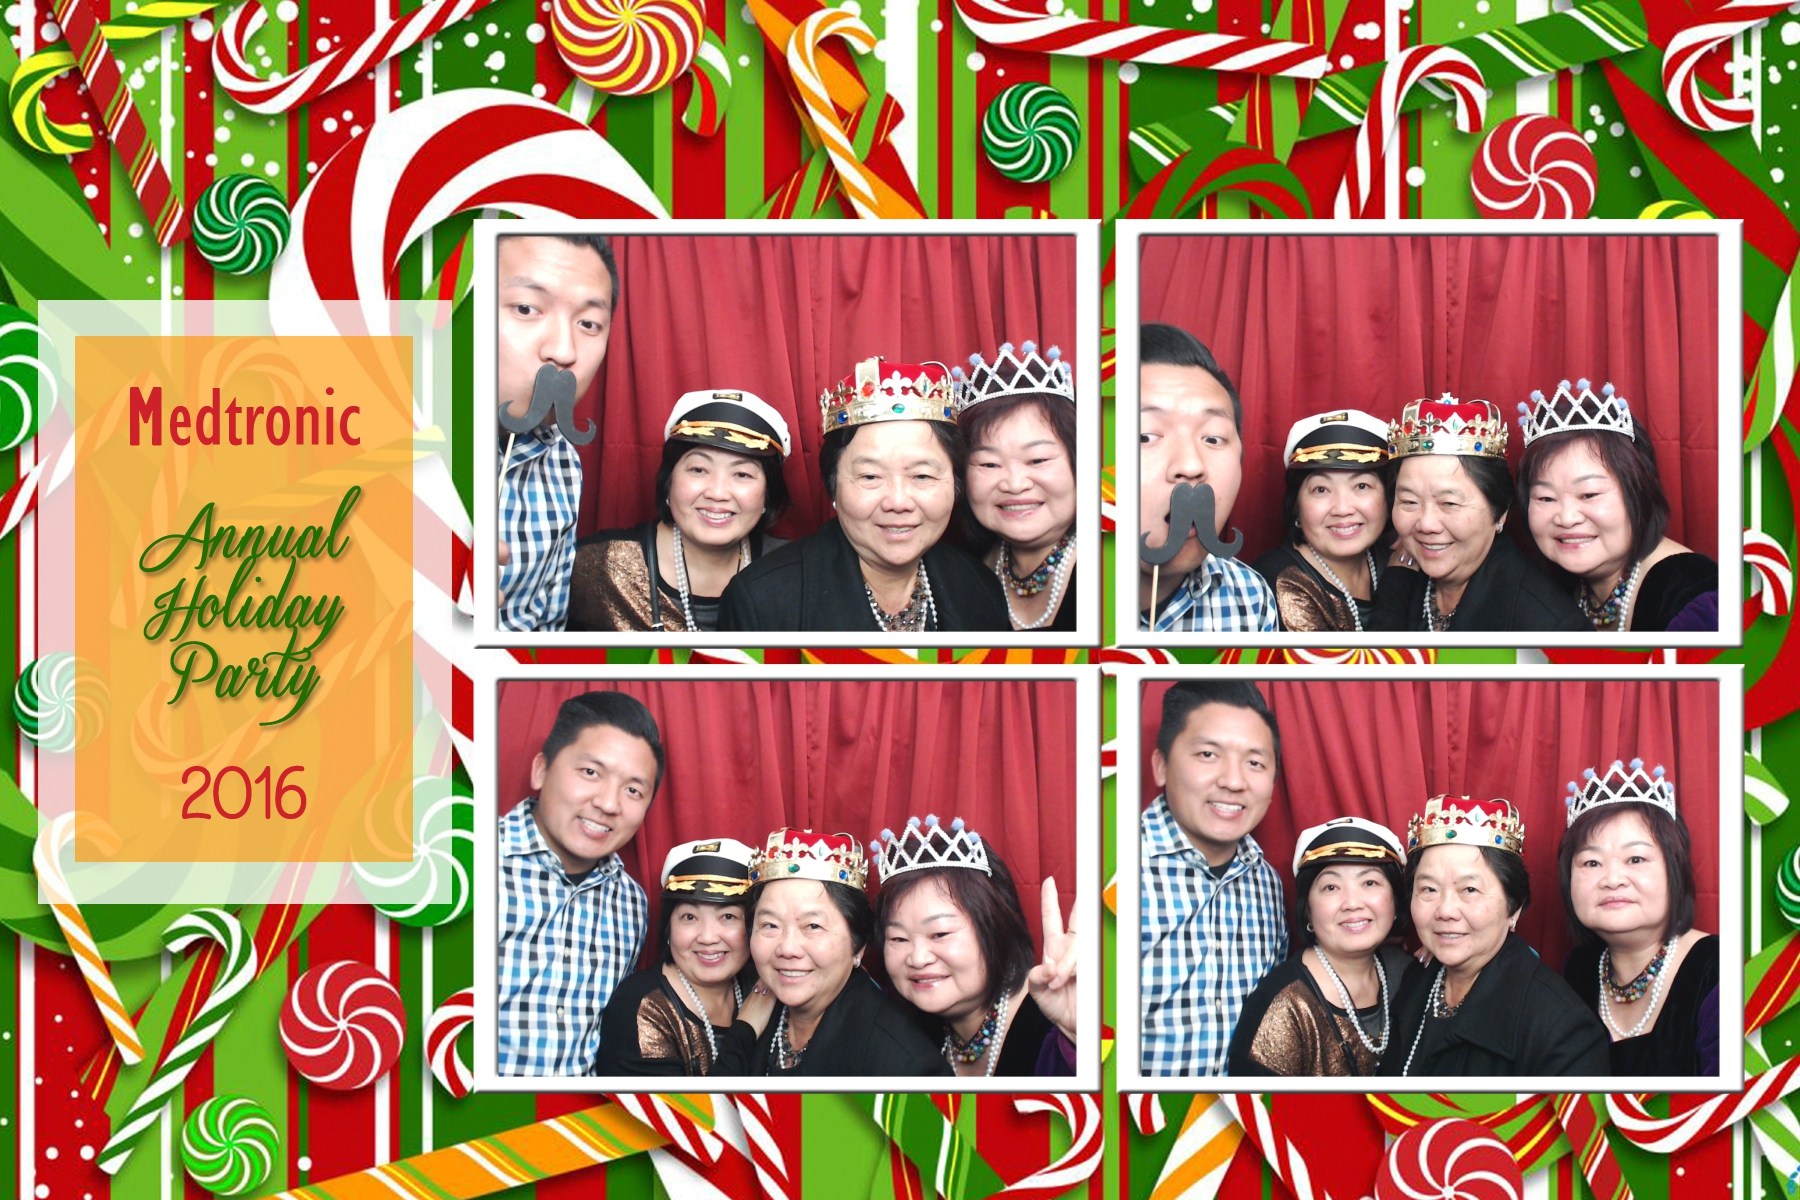 Medtronic Christmas Party 2016